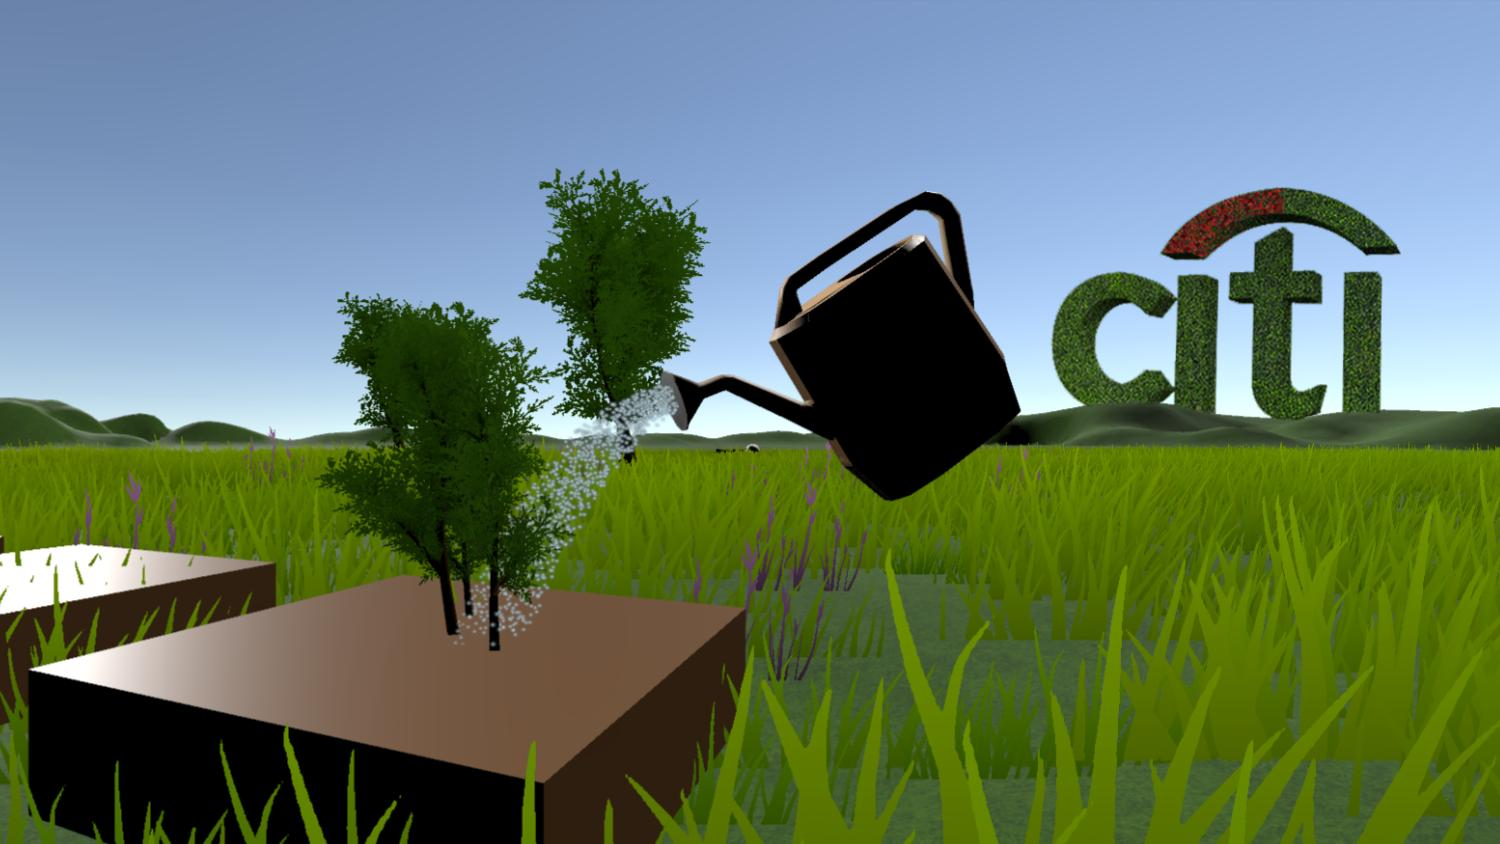 Copy of CITI VR GARDEN (23).jpg